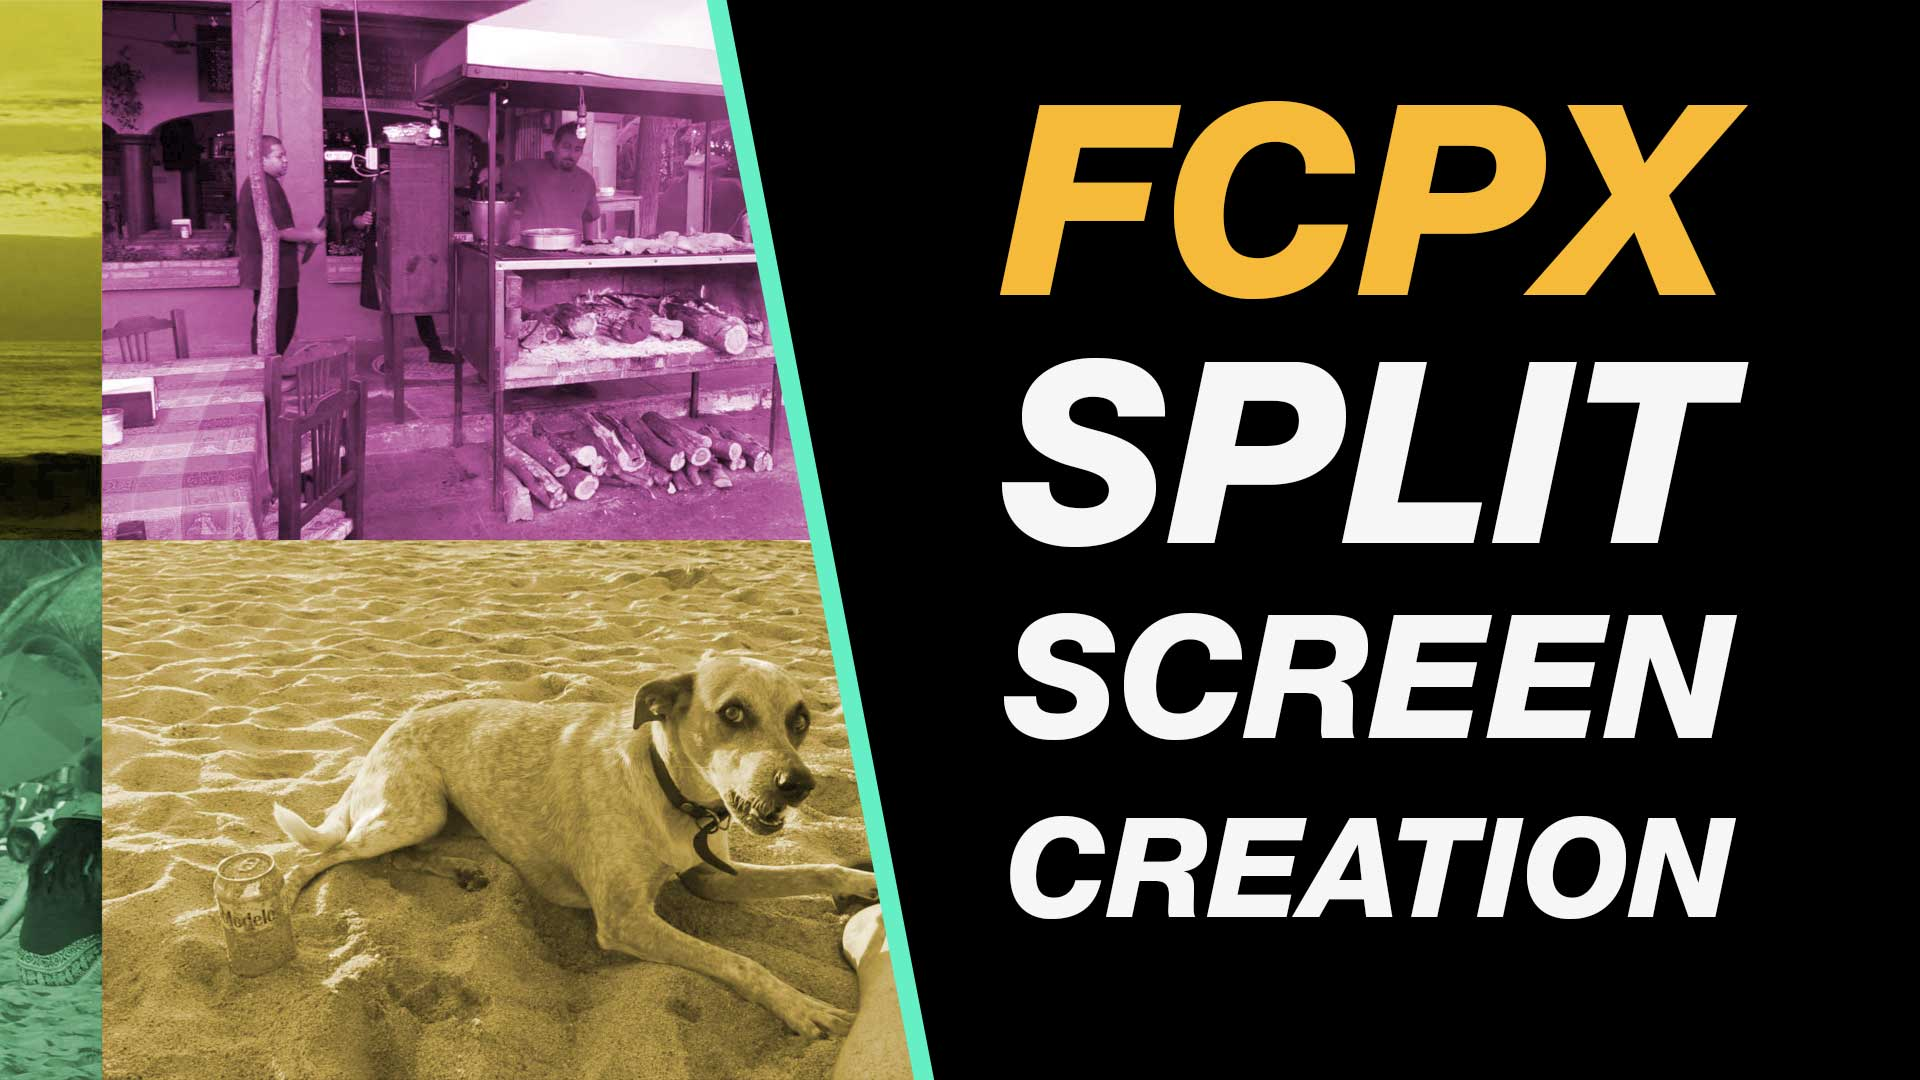 Final Cut Pro X Tutorial: Free Split Screen Creation with No Plugins